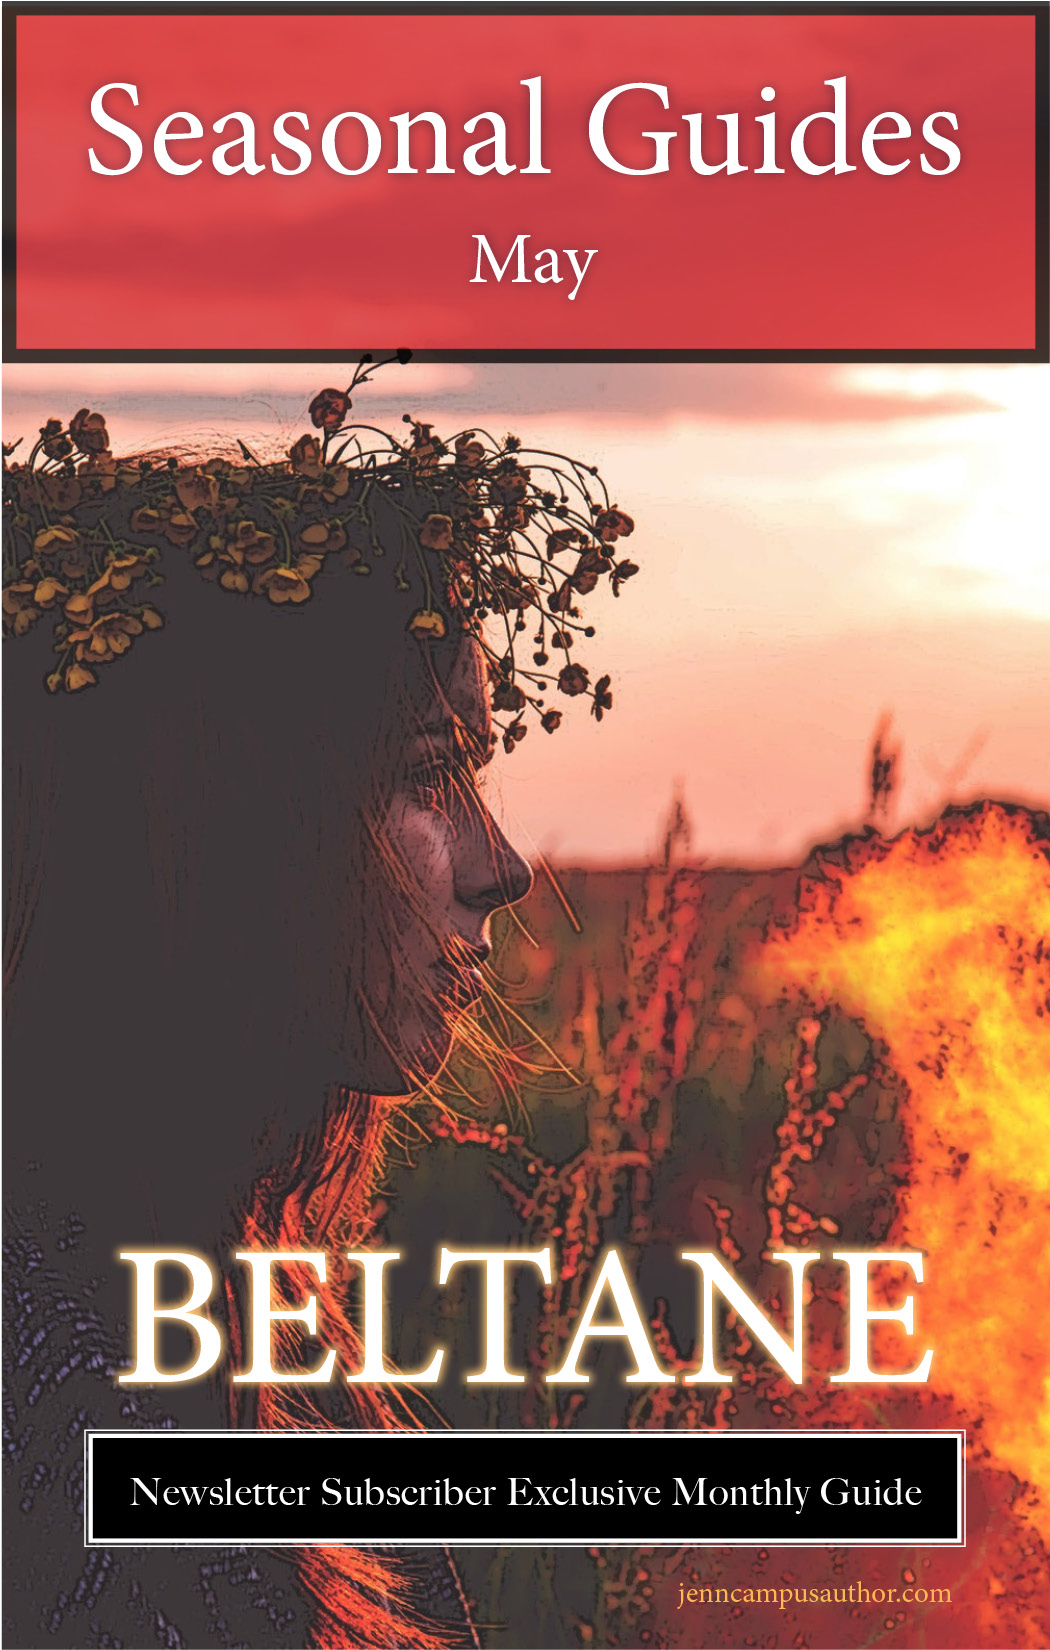 Seasonal Guide for May - Beltane